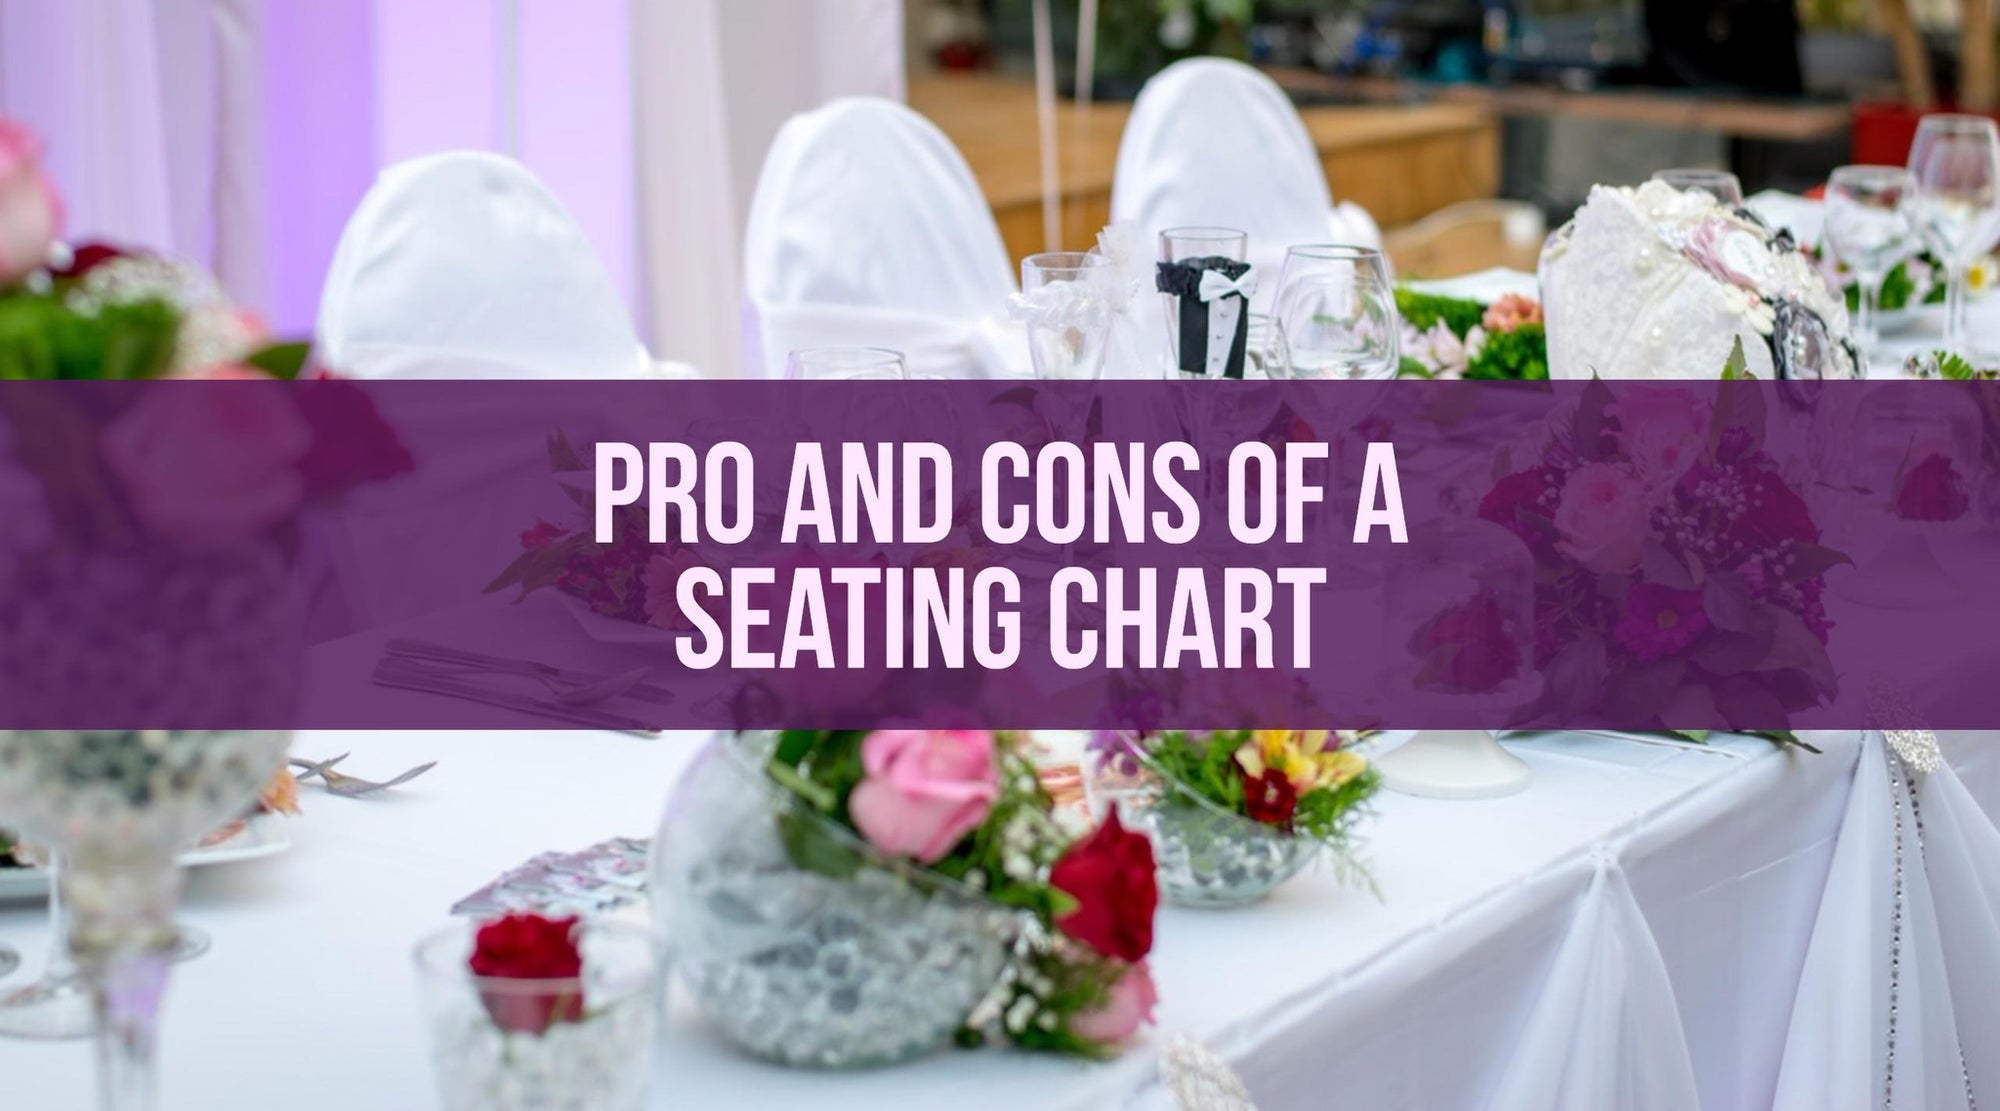 The Pros and Cons of a Seating Chart